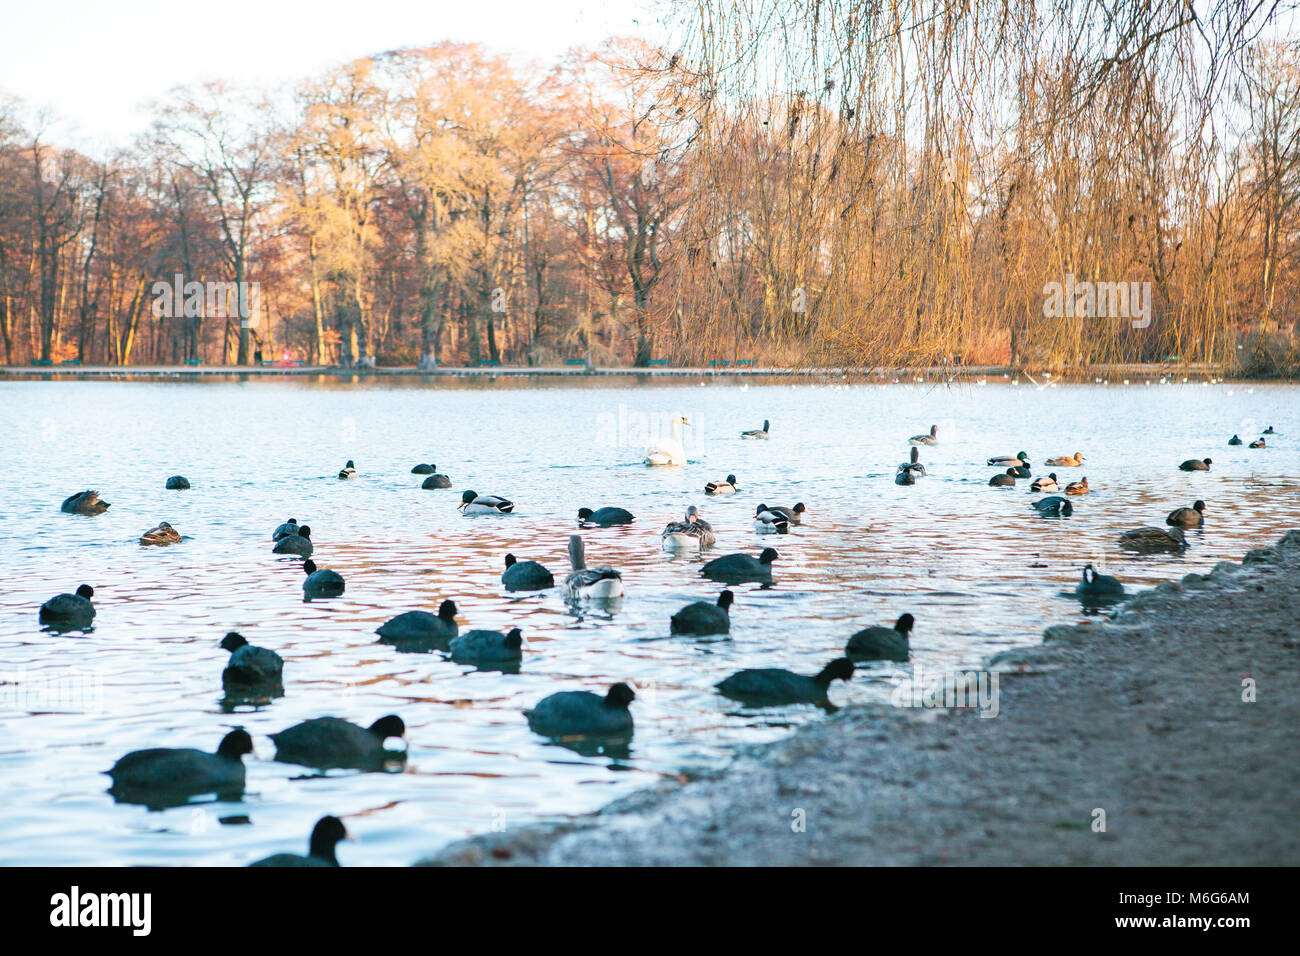 Lake view with ducks and swan in Englischer Garten or English Garden in Munich, Germany. - Stock Image